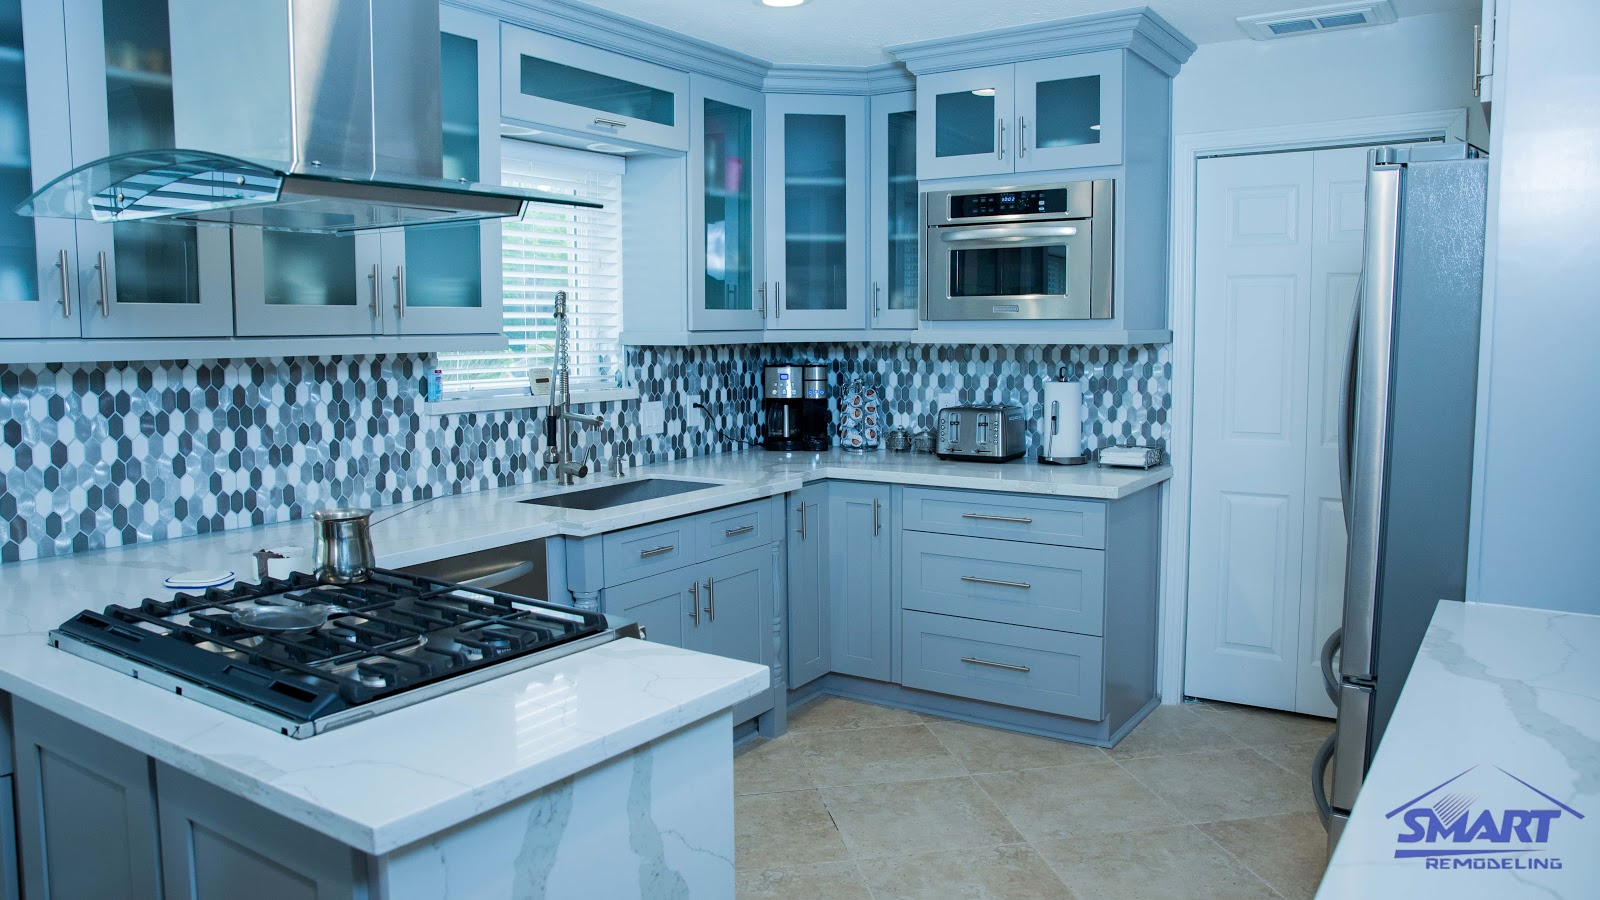 Smart Remodeling Llc Blog How To Select The Best Kitchen Remodeling Contractor